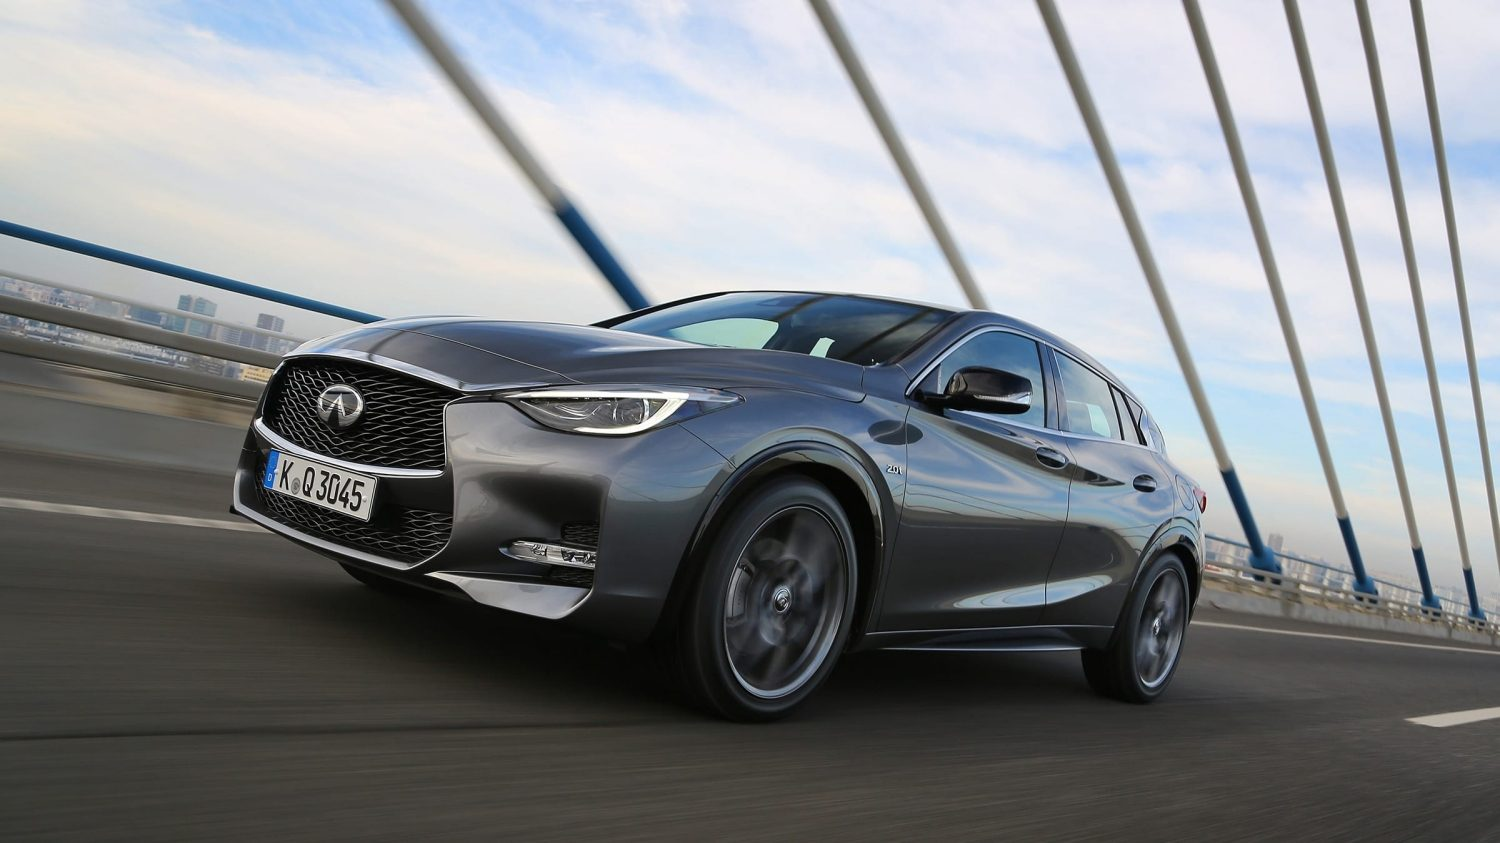 2018 INFINITI Q30 Crossover Performance Features